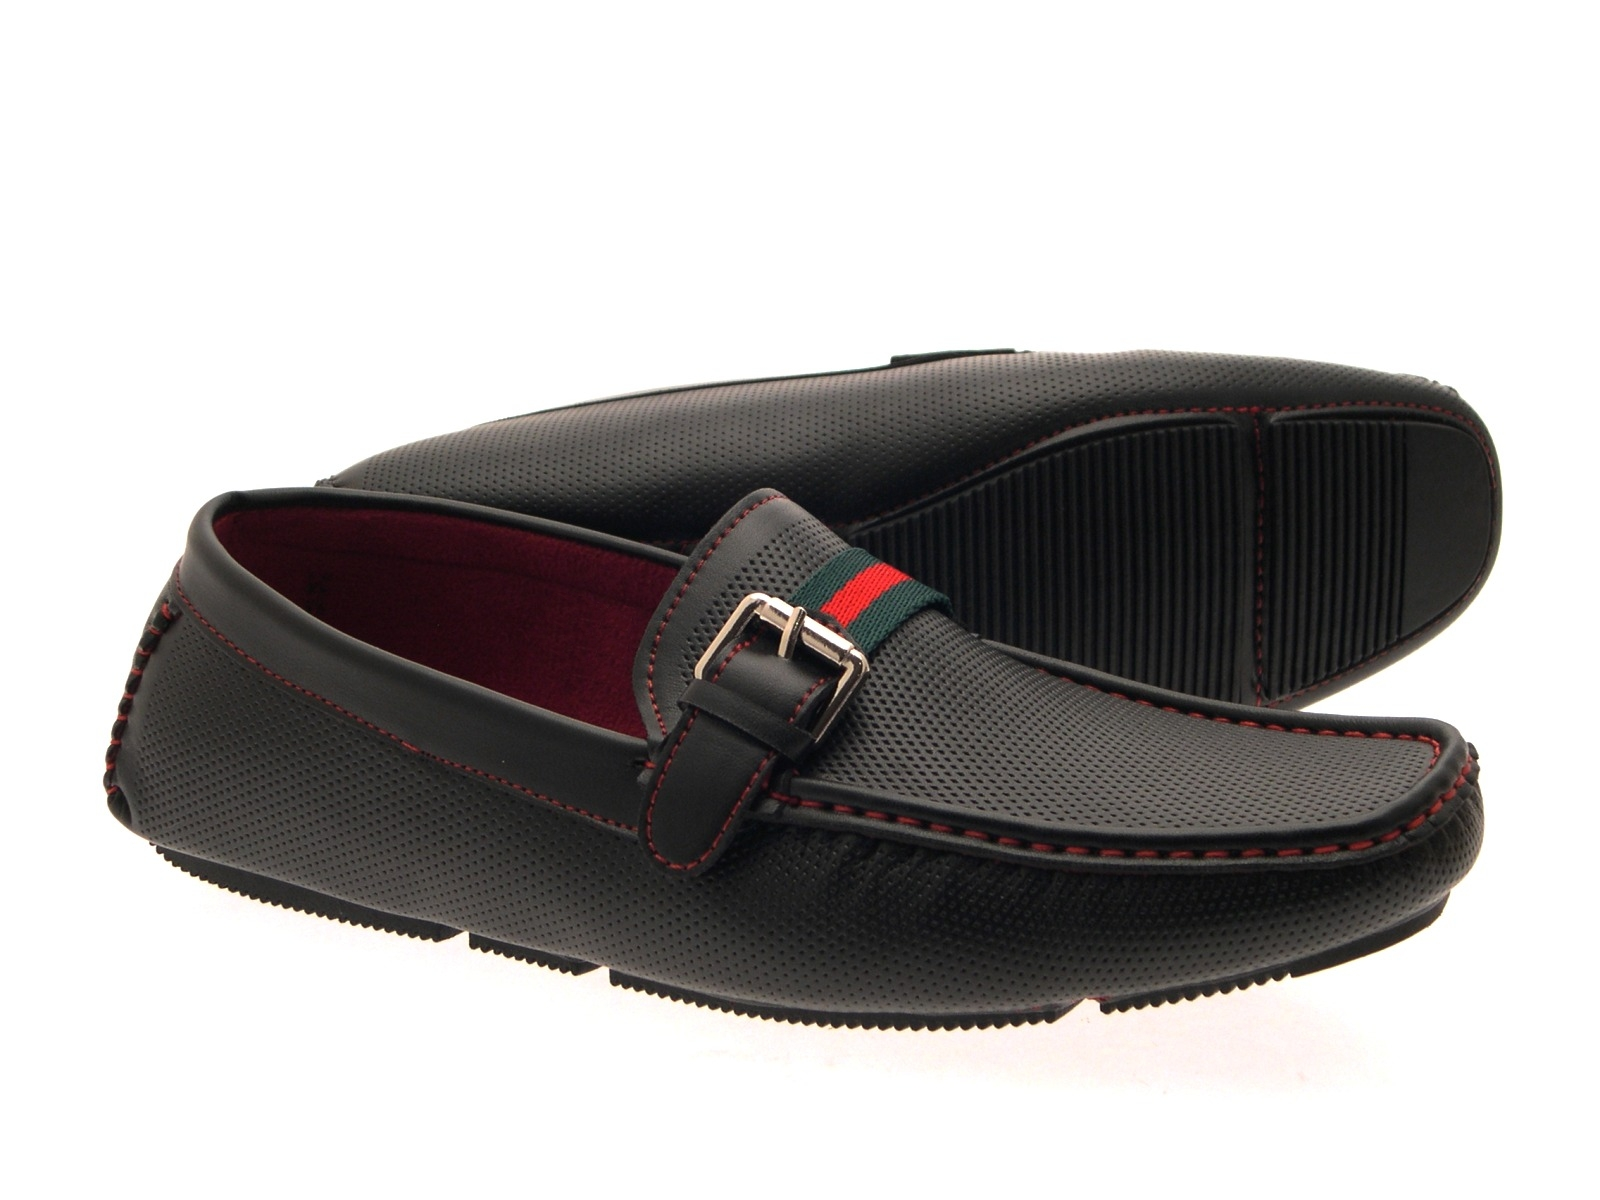 mens moccasin loafers formal mules casual slip on faux